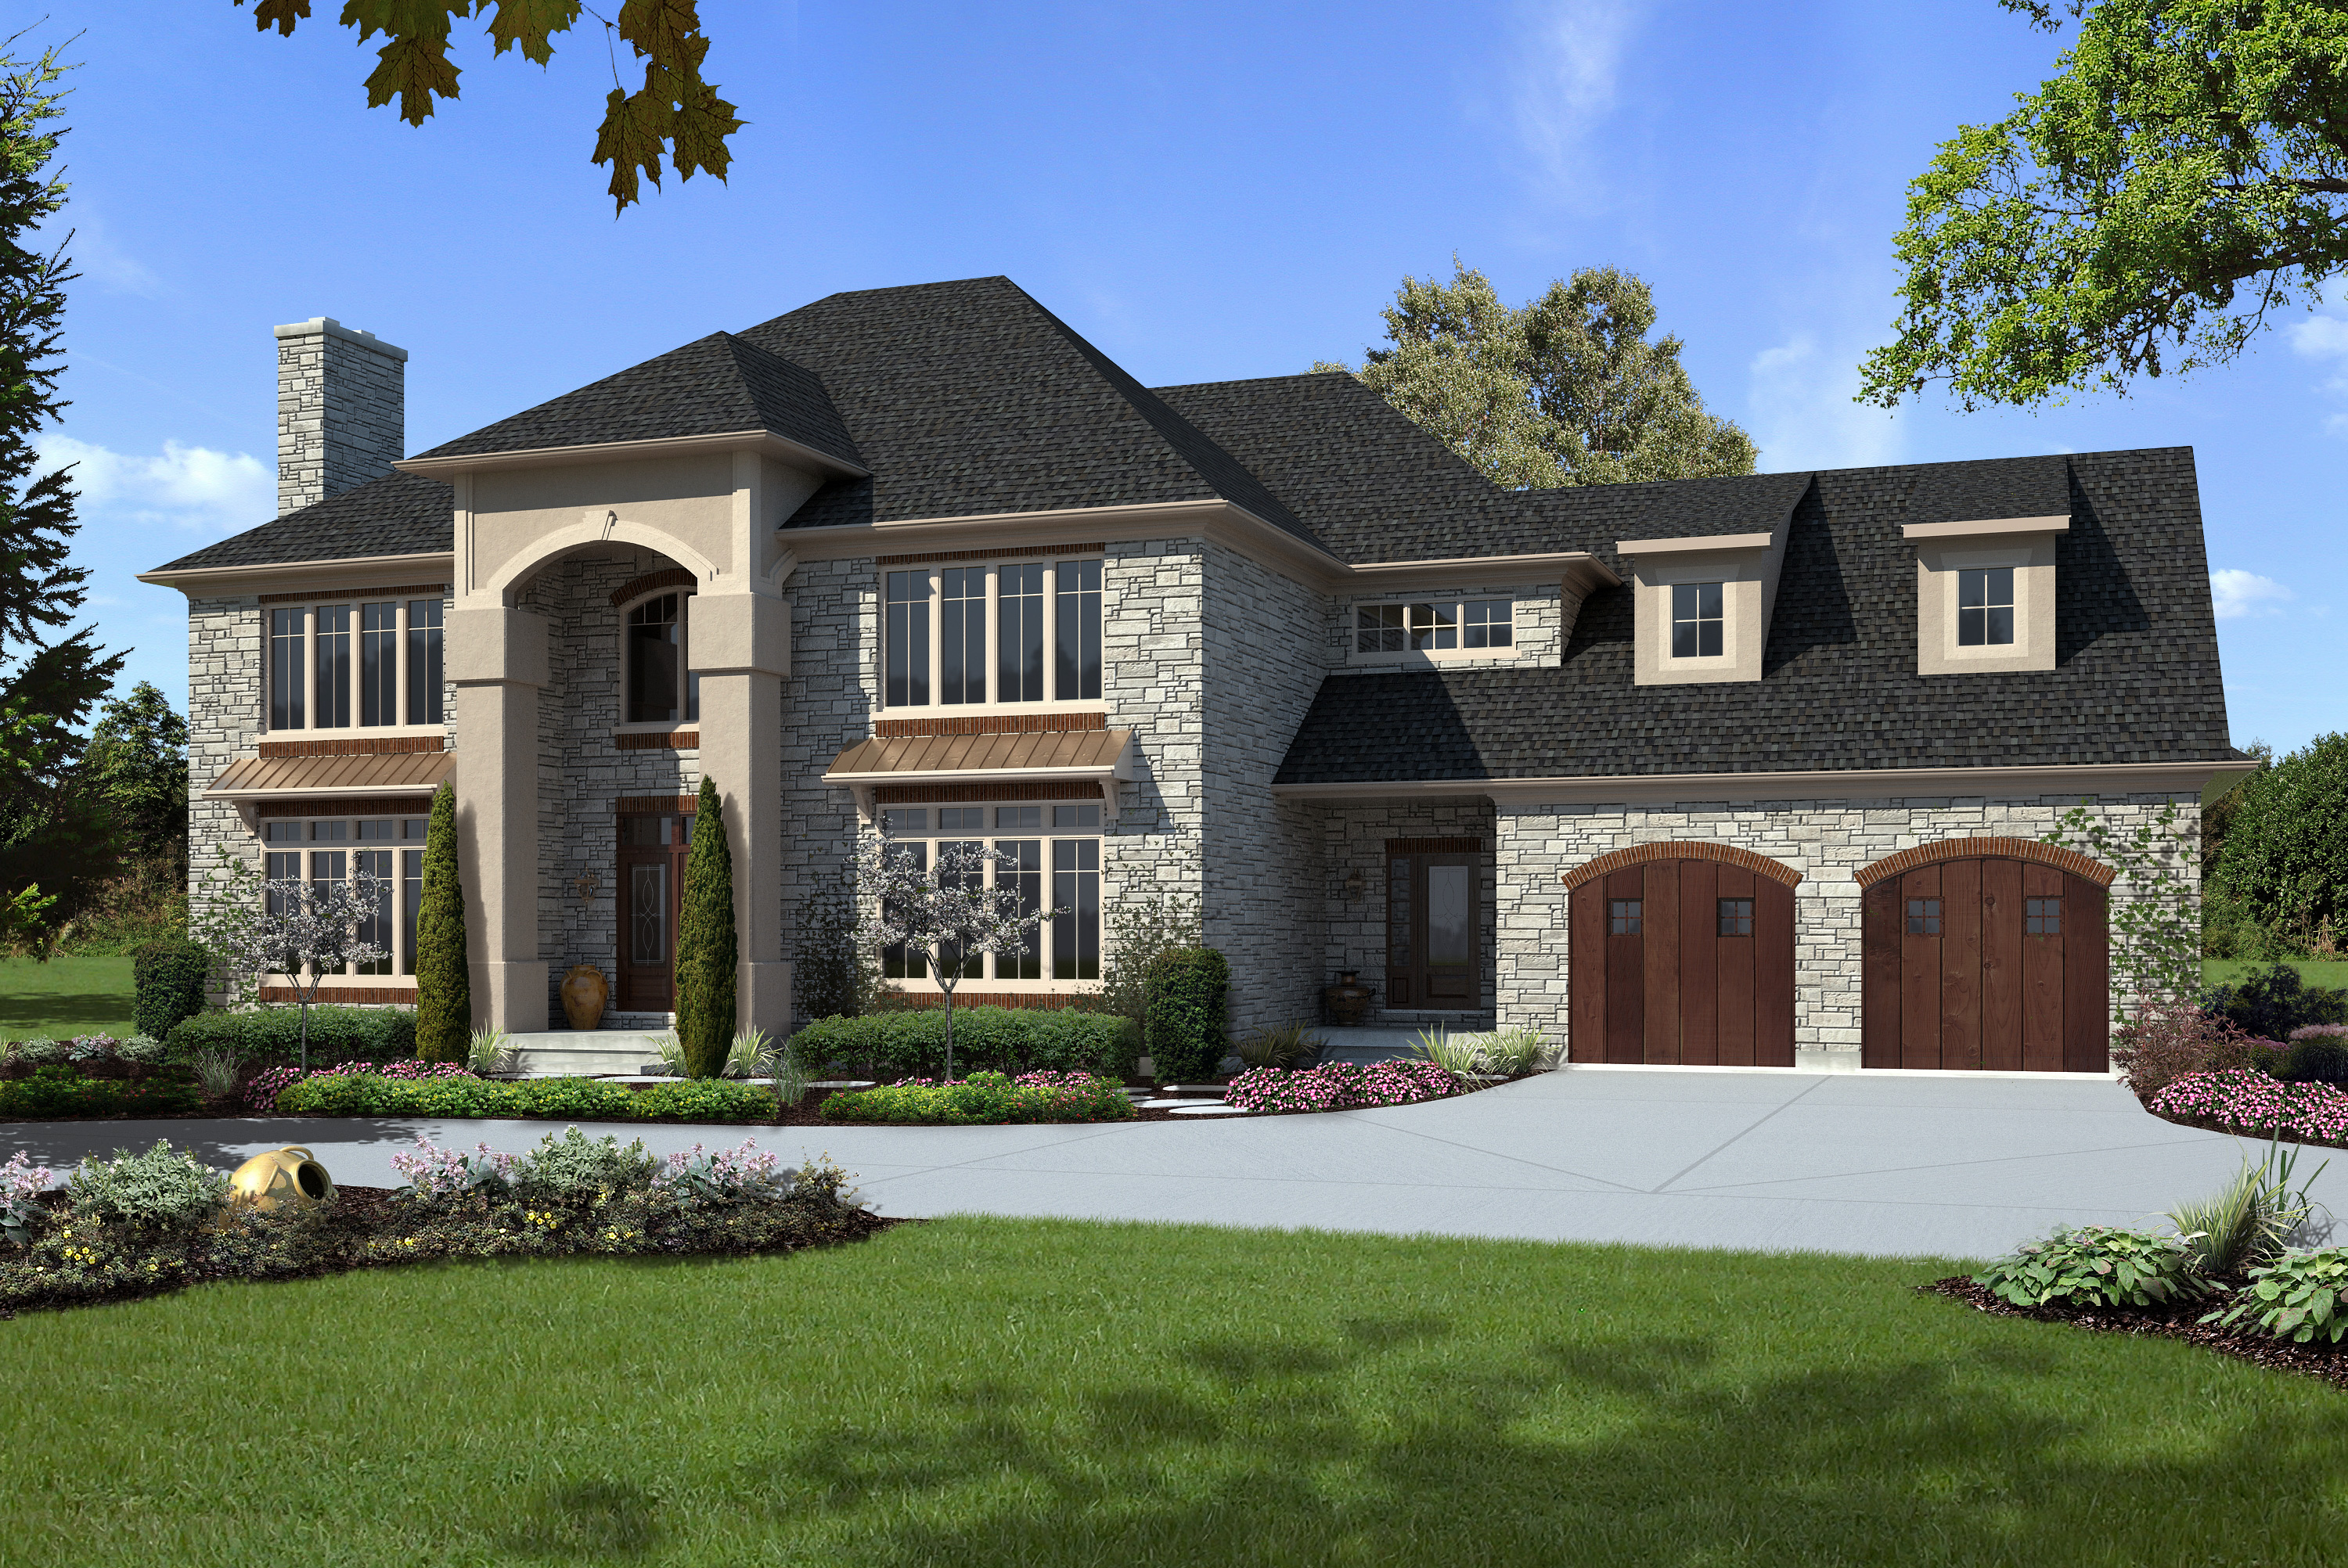 Custom home designs custom house plans custom home plans New custom home plans